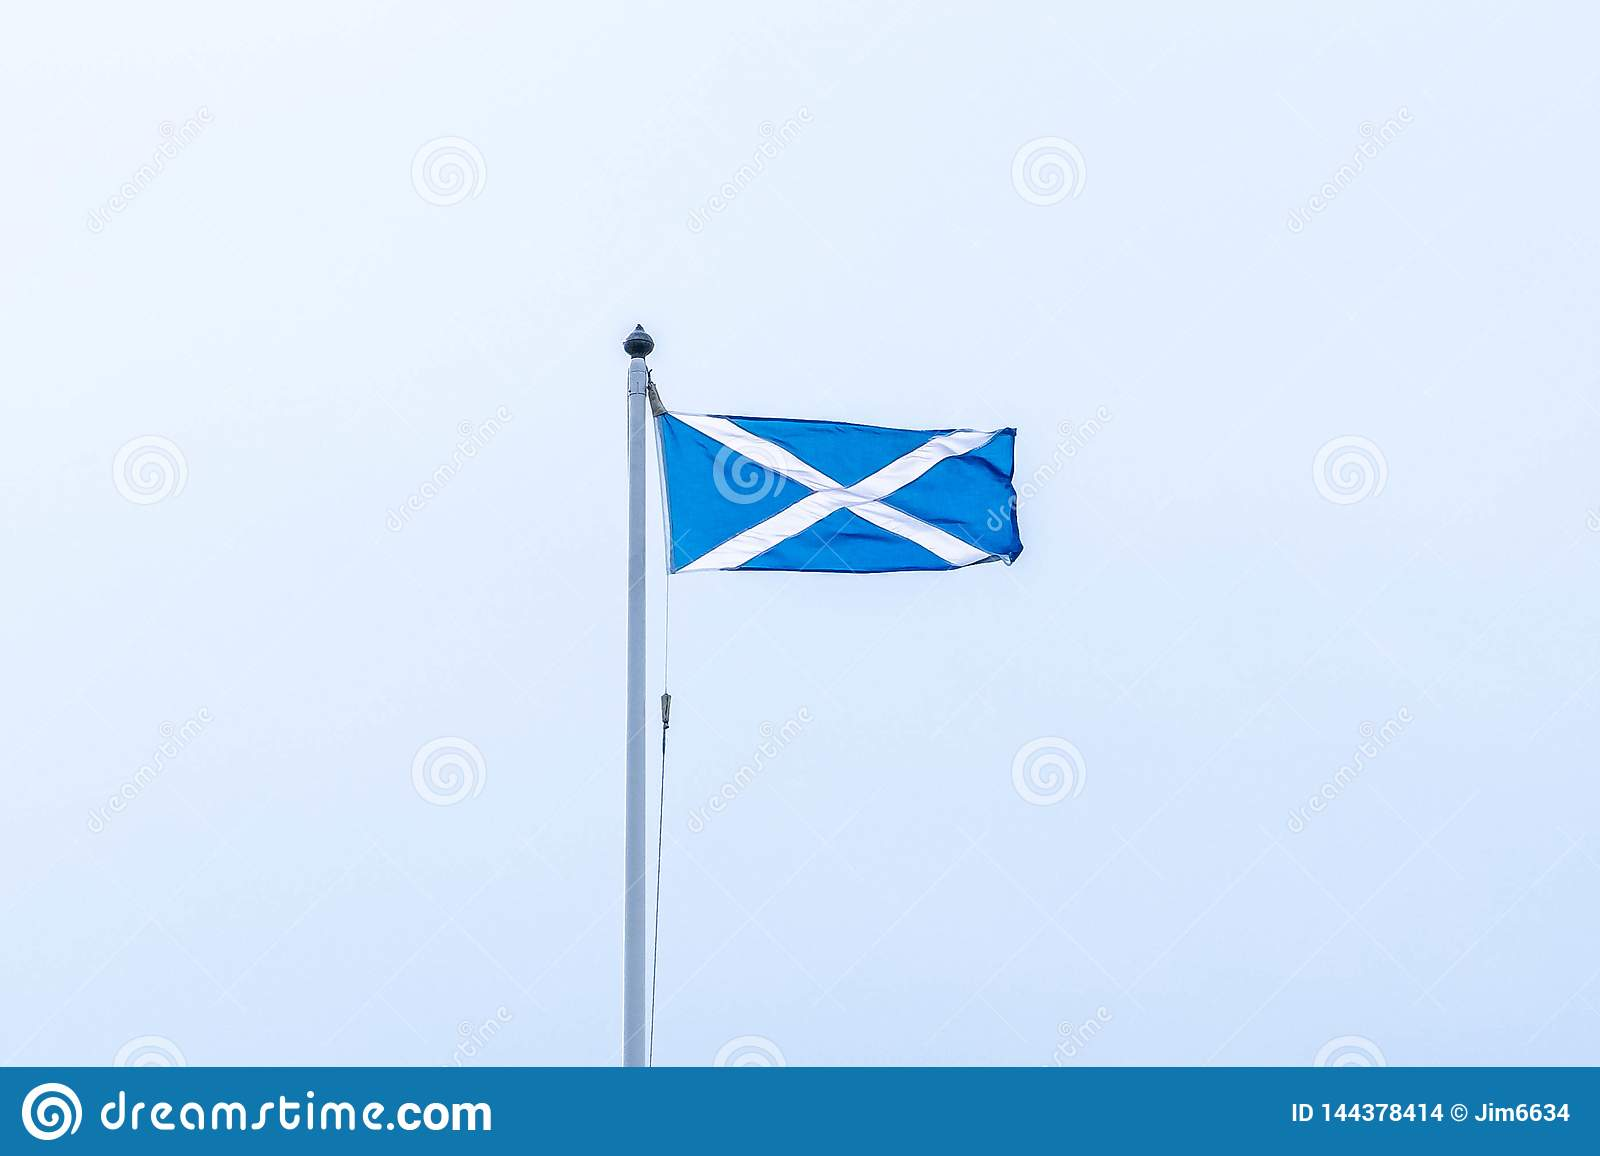 Scotlands Saltire Flag Flying High on Top of One of Scotlands Historic Castles in Seamill Scotland